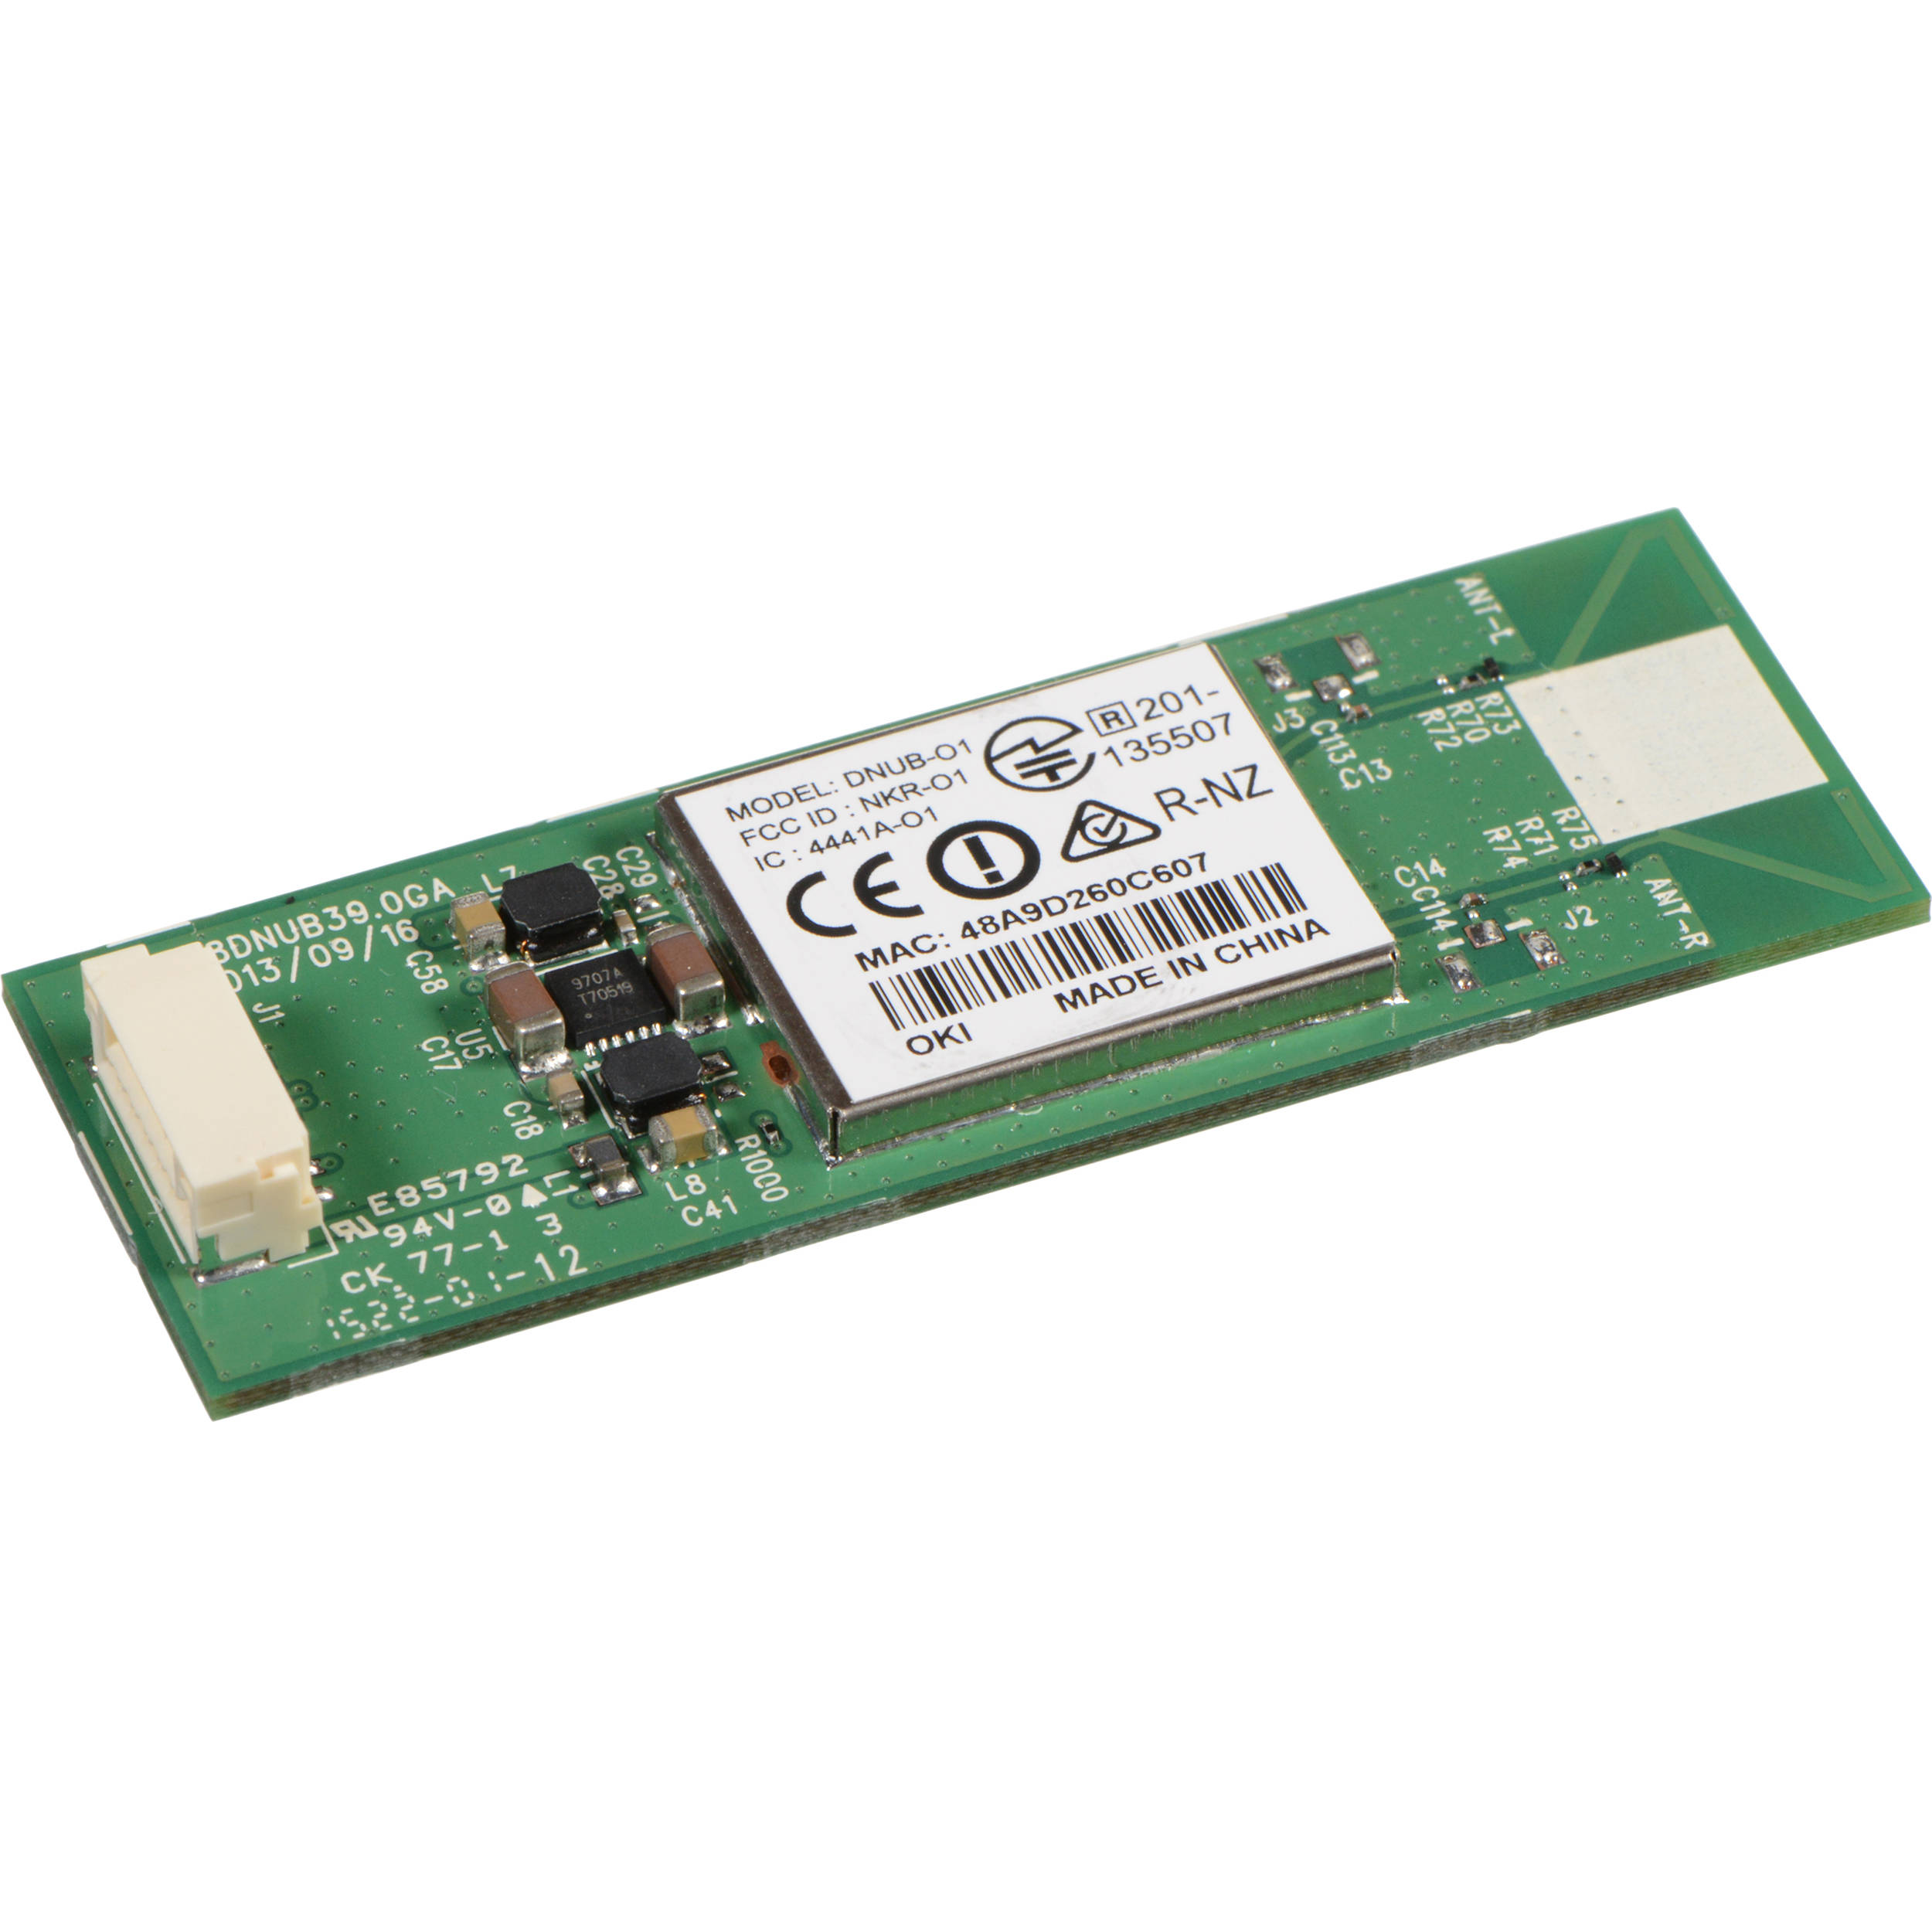 https://www.bhphotovideo.com/images/images2500x2500/oki_45830201_802_11a_b_g_n_wireless_module_for_1145968.jpg